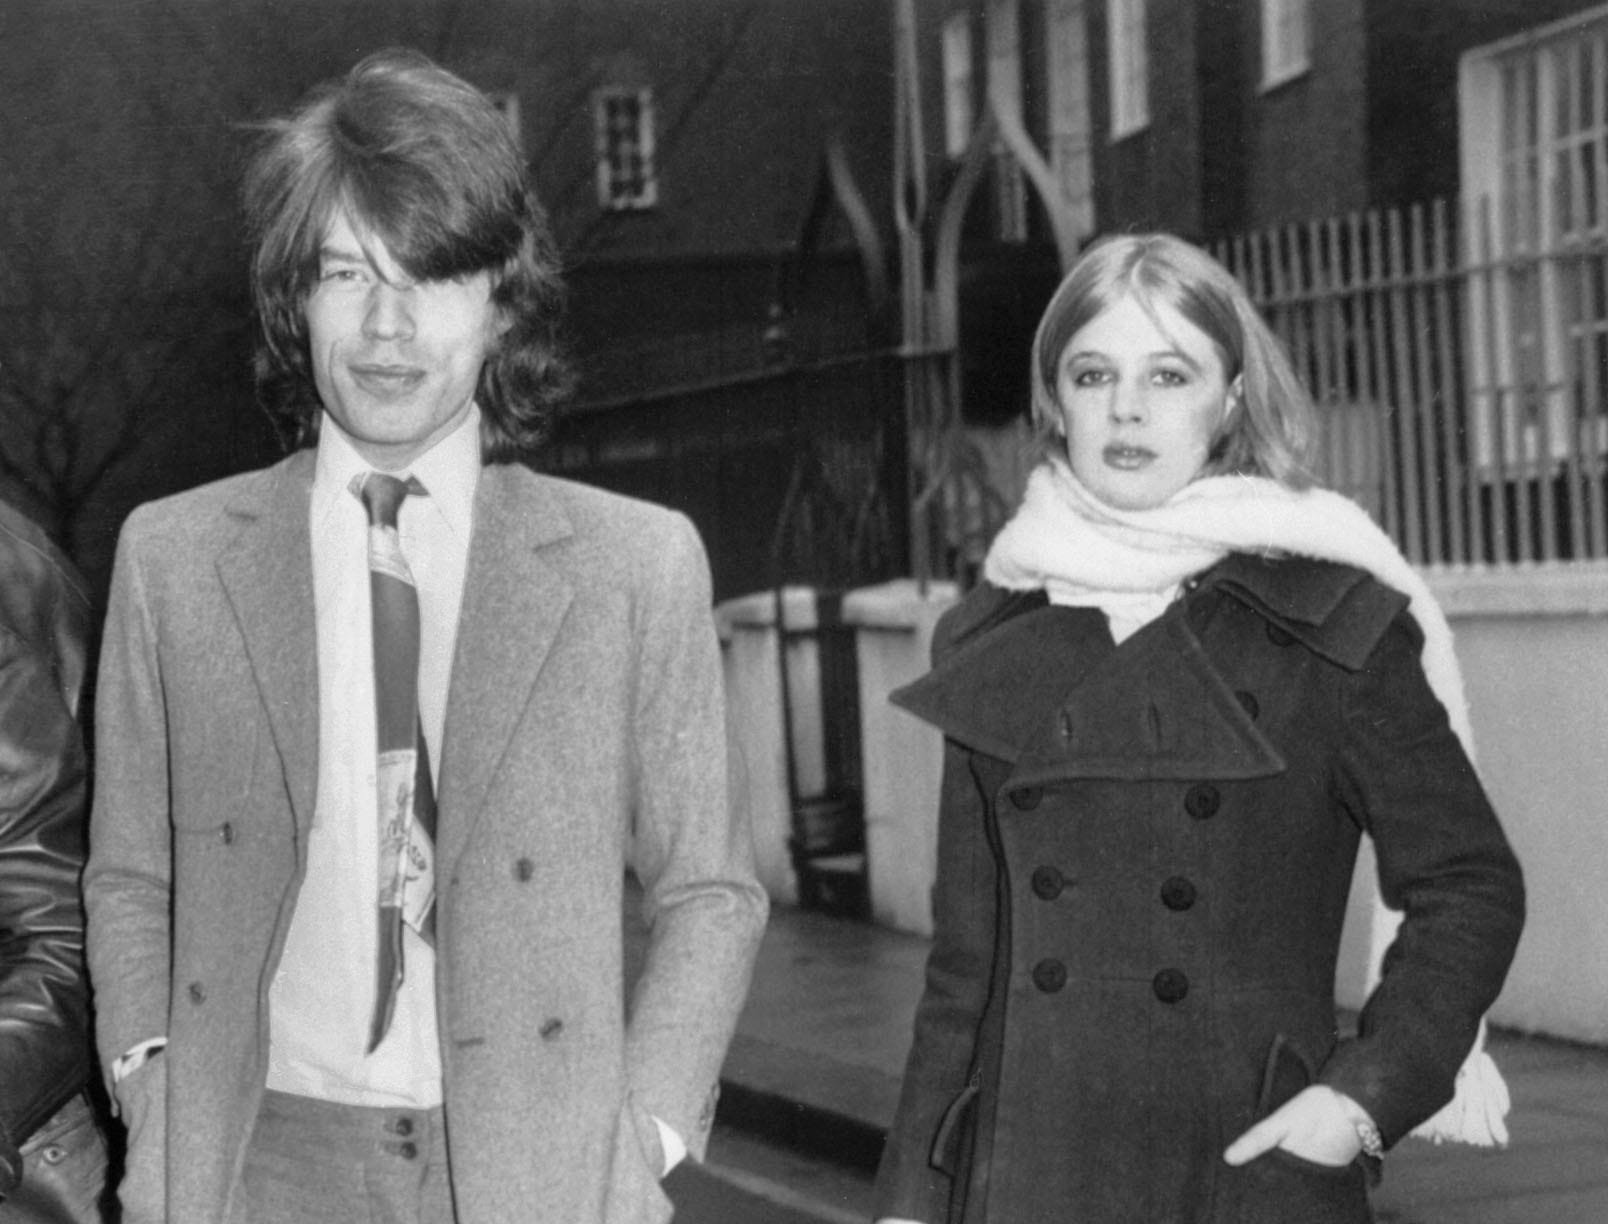 UNITED STATES:  A picture taken in the 1960's shows Rolling Stones singer Mick Jagger with his girlfriend Marianne Faithfull.  (FILM)  AFP PHOTO (Photo credit should read AFP/AFP/Getty Images)